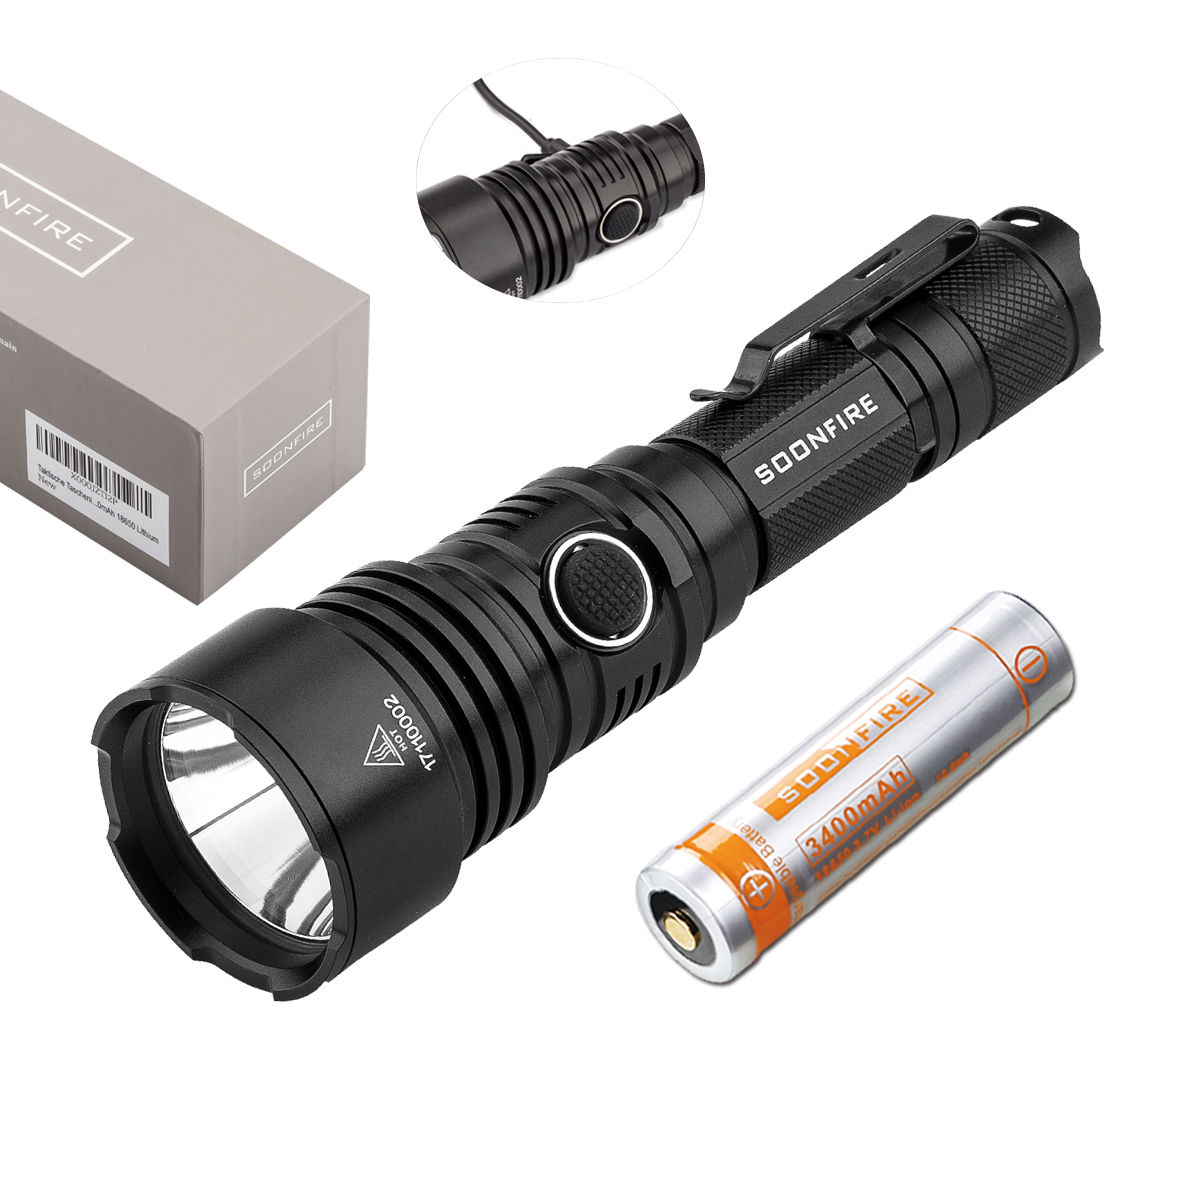 Soonfire VS50 Tactical Flashlight